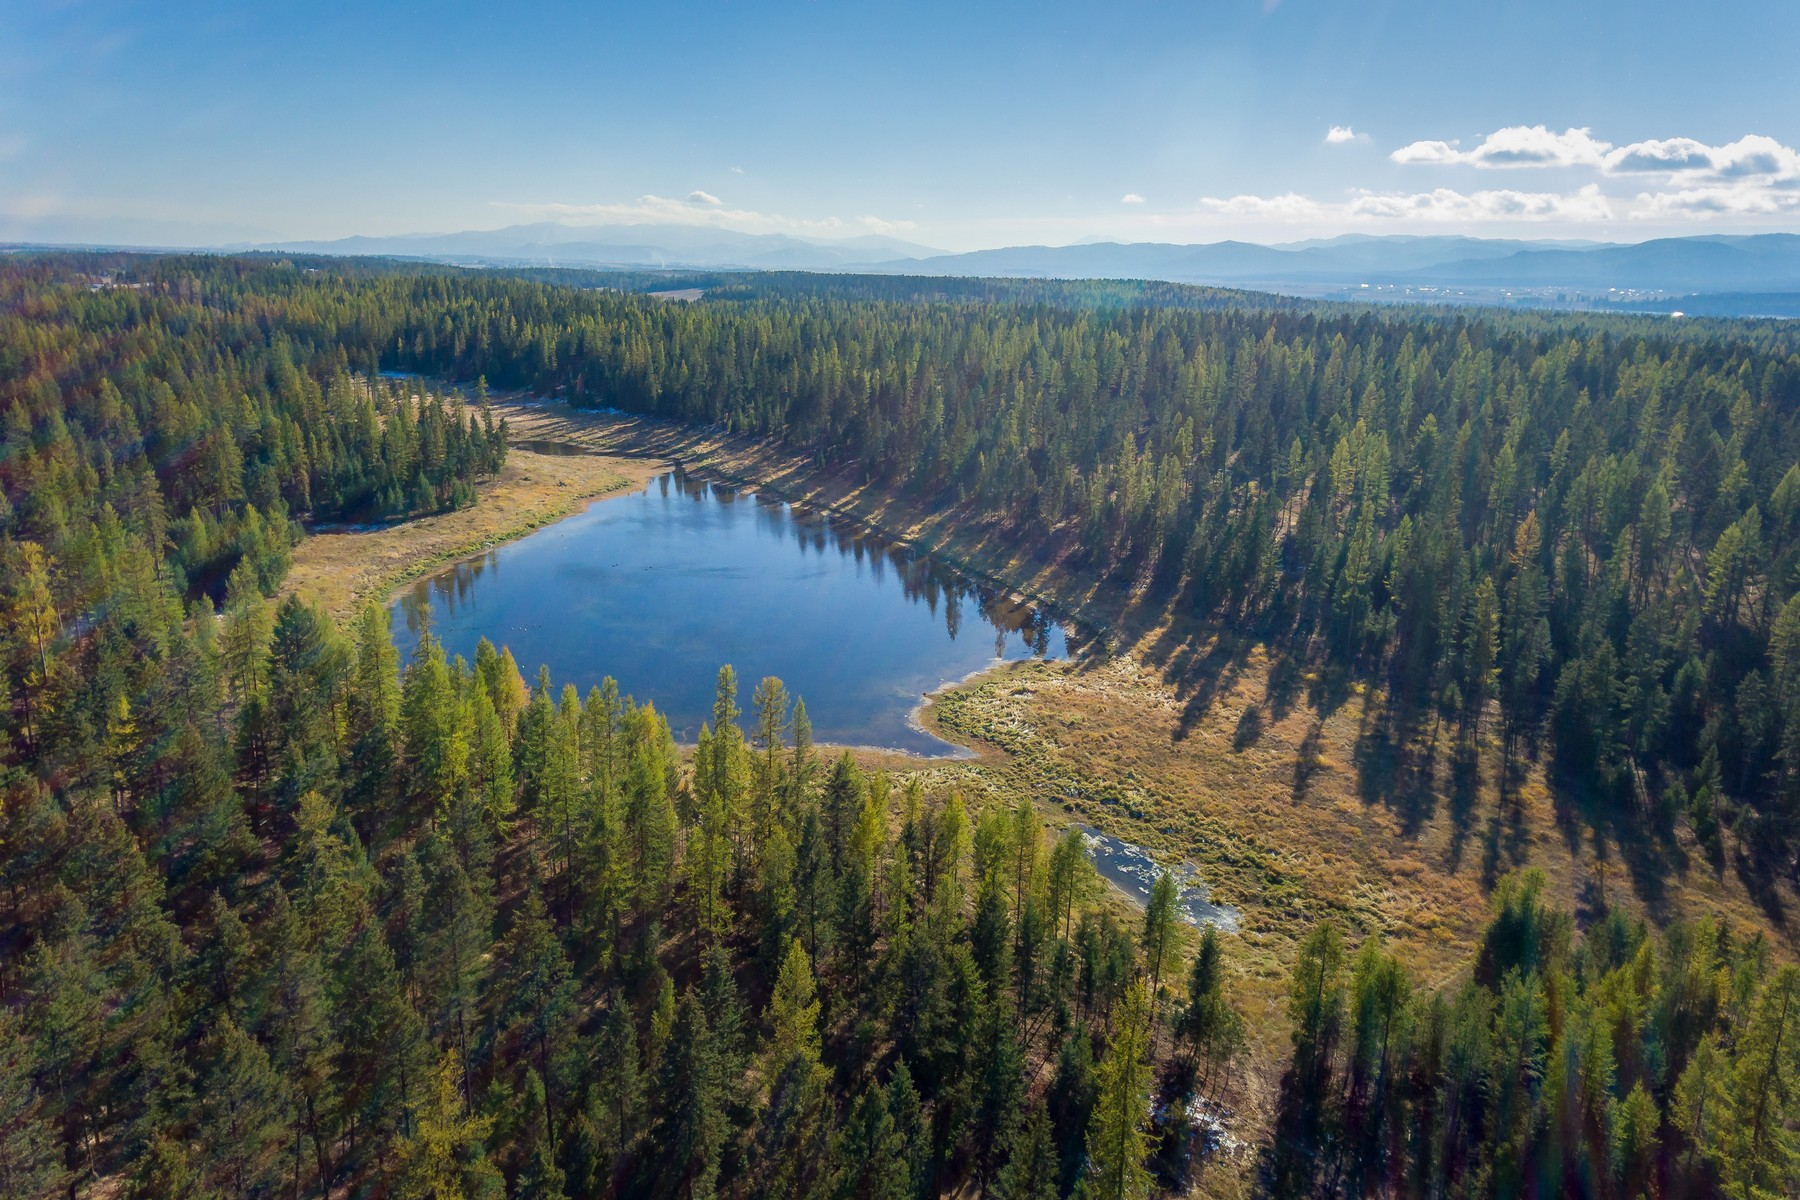 Land for Sale at 1085 Whitefish Village Drive, Lot 16, Whitefish, M 1085 Whitefish Village Dr Lot 16 Whitefish, Montana 59937 United States